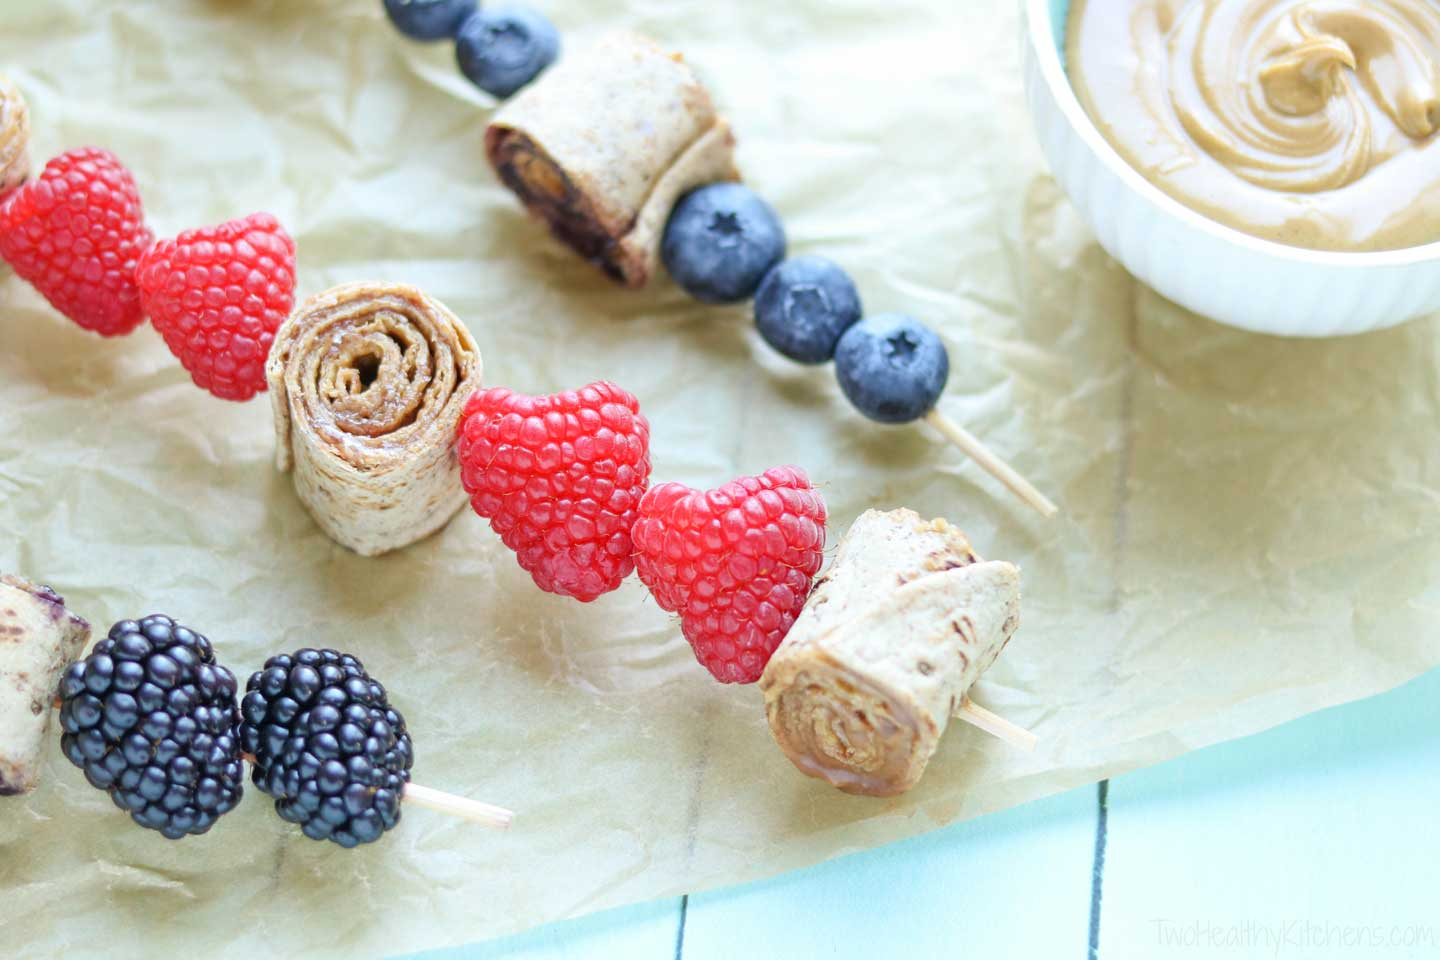 Fresh fruit, like these gorgeous raspberries, is so terrific with these sandwich skewers, but you can also try using dried fruits like plump dried apricots, cherries and plum.